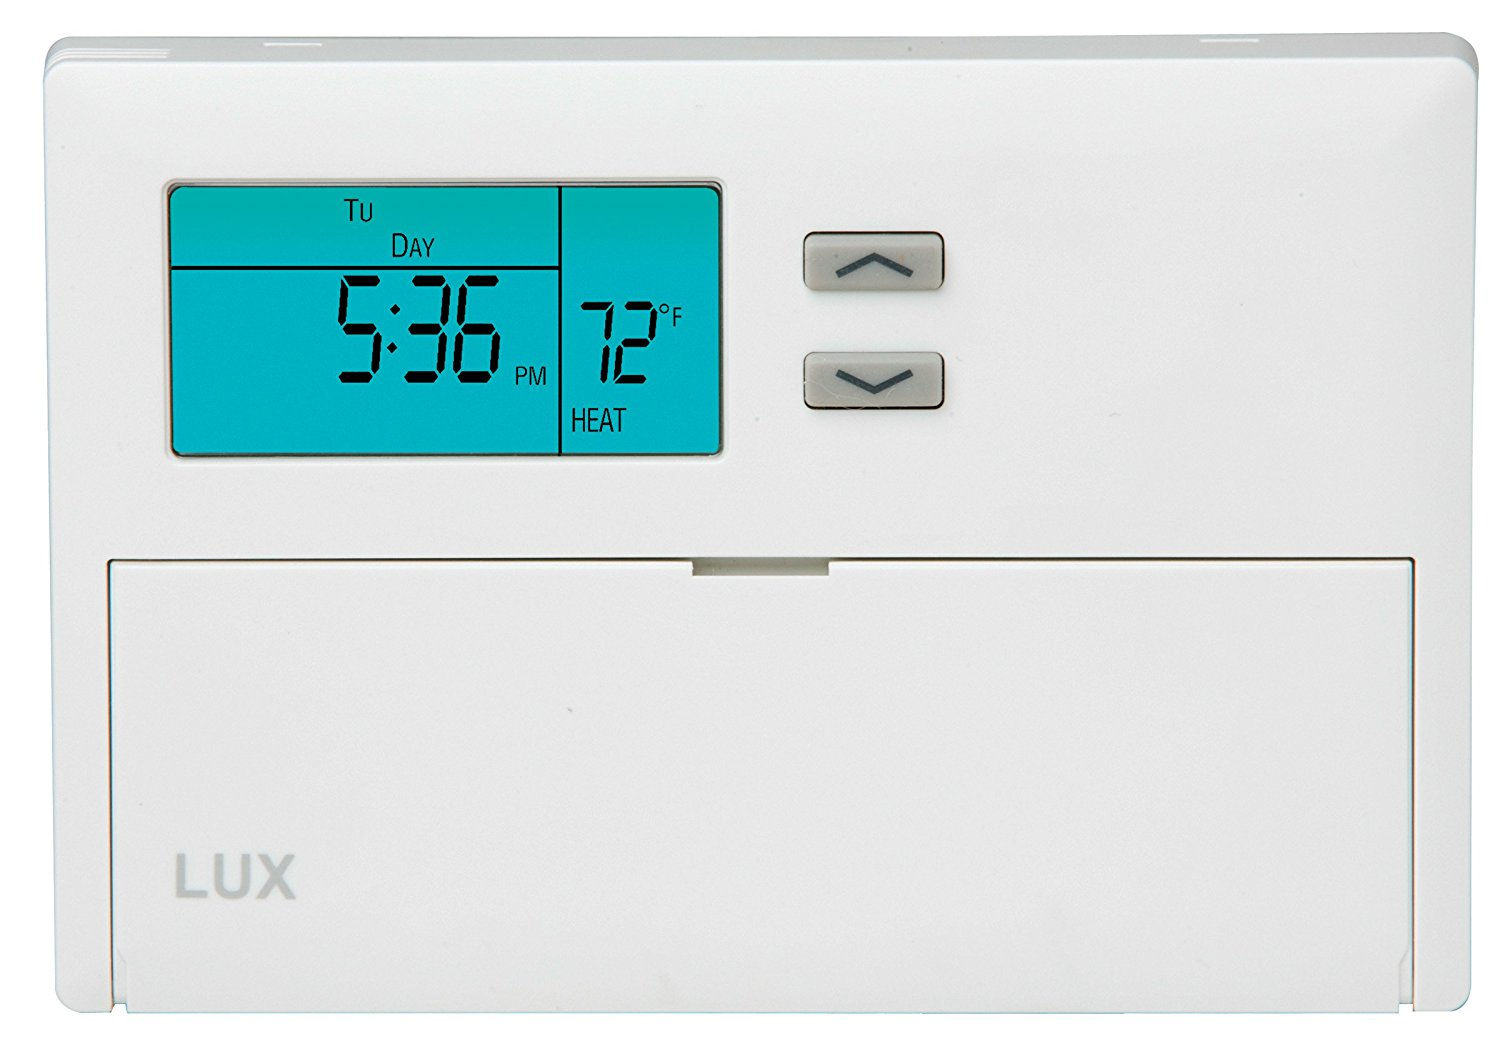 Lux 1500 Thermostat Not Working Wiring Diagram Get Quotations Tx9100e 7 Day Universal Programmable